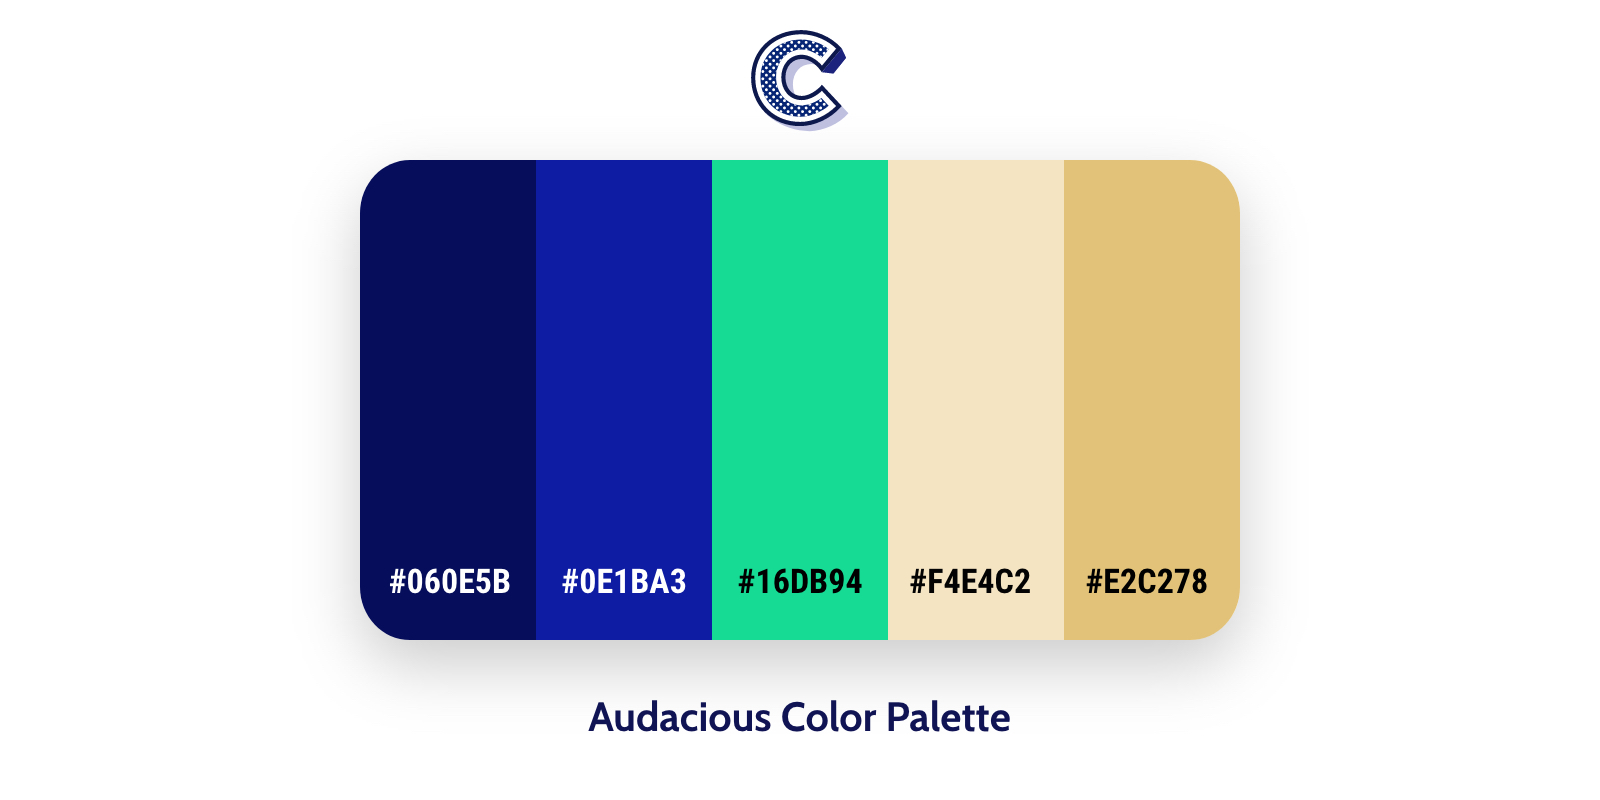 the featured of audacious color palette